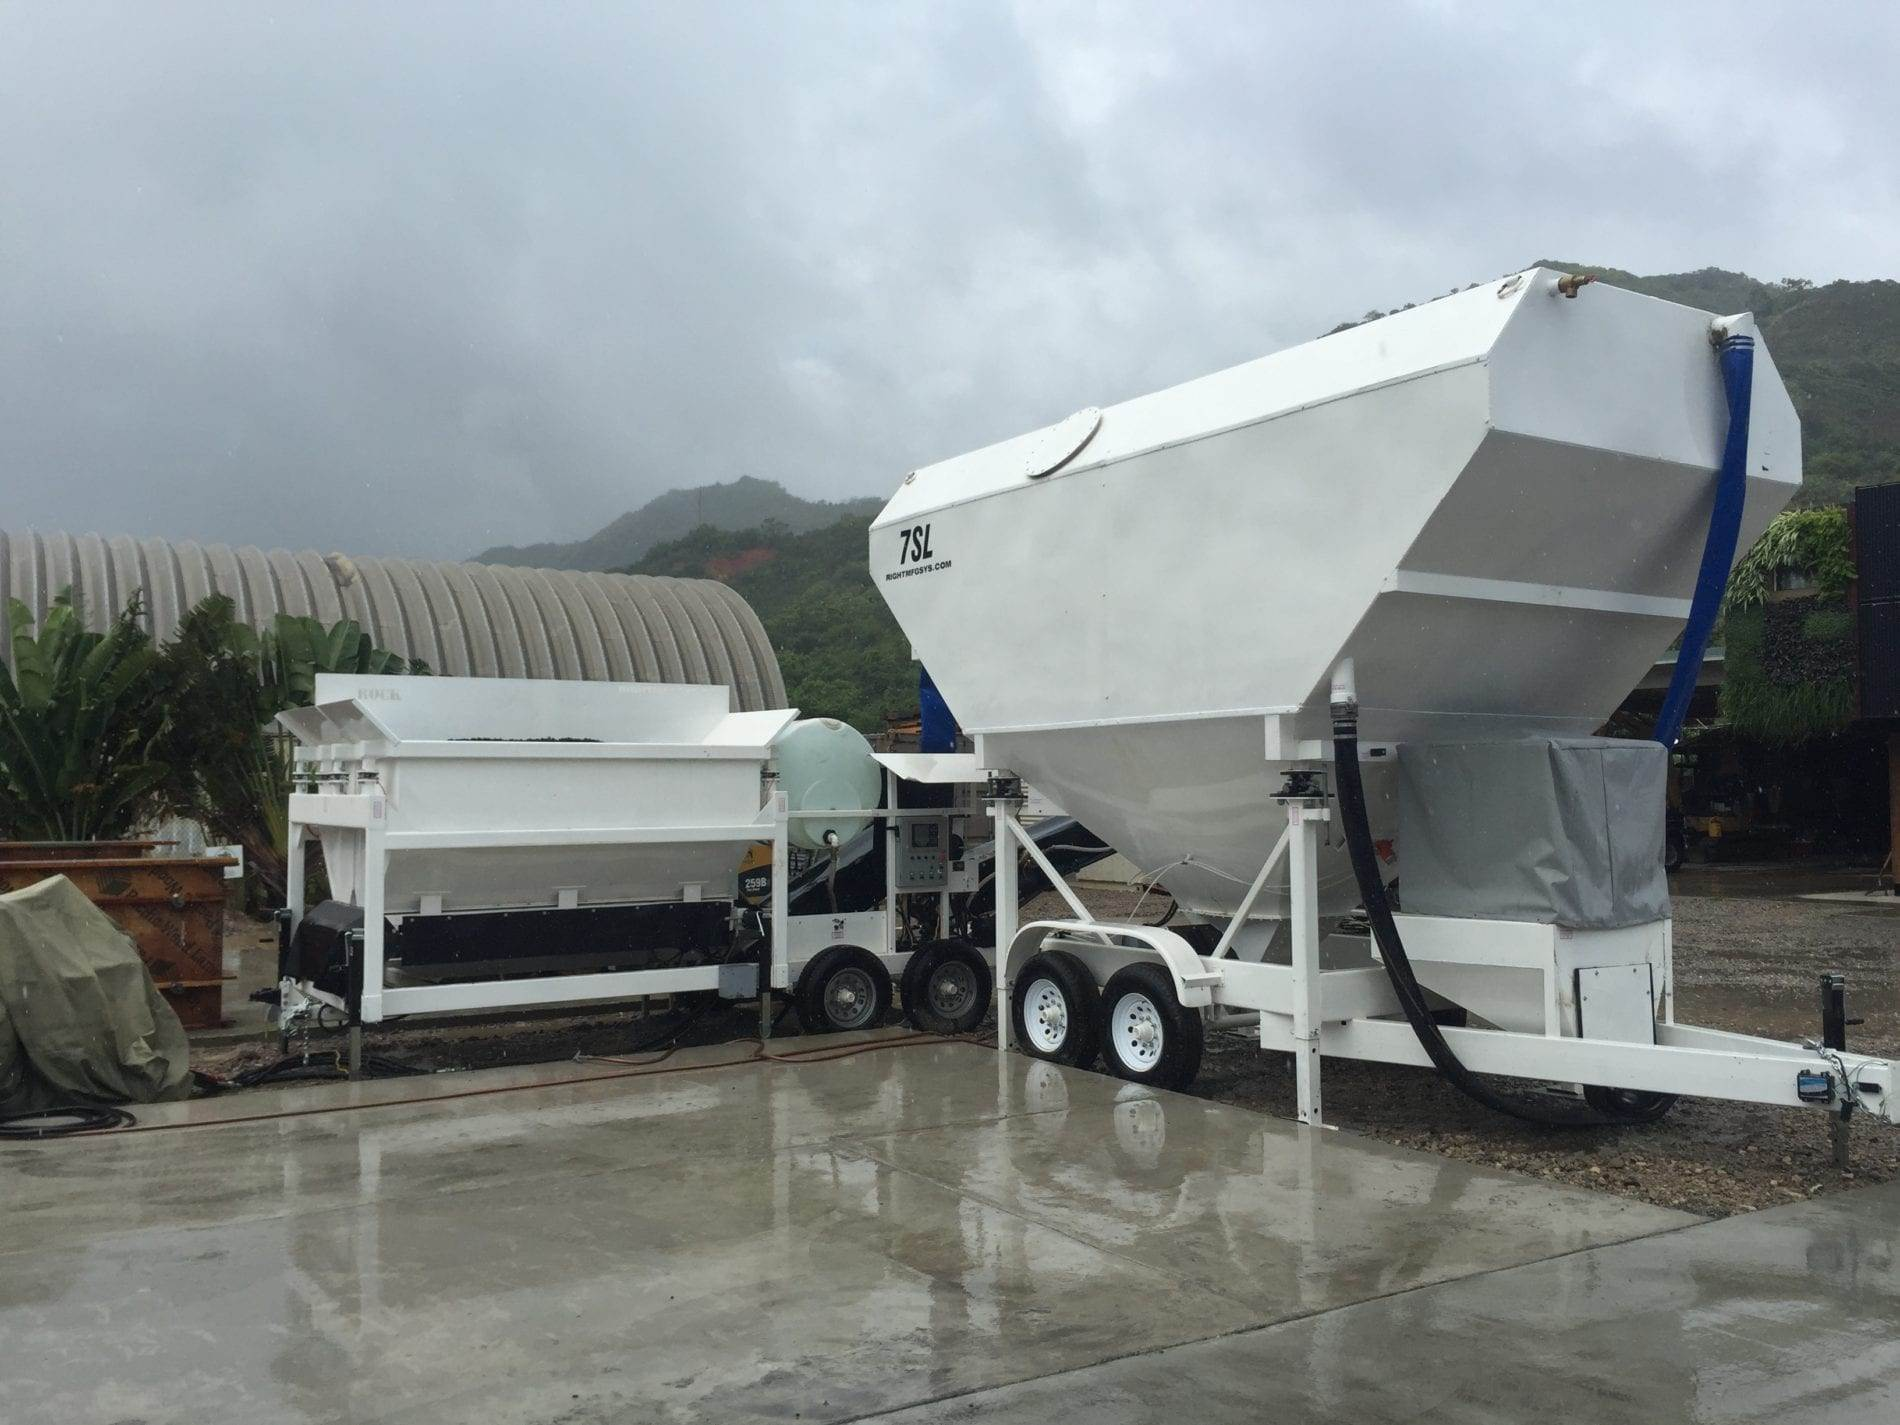 Portable Concrete Batching Plant 2CL-5-2 & Portable Cement Silo 7SL-80 in Hawaii